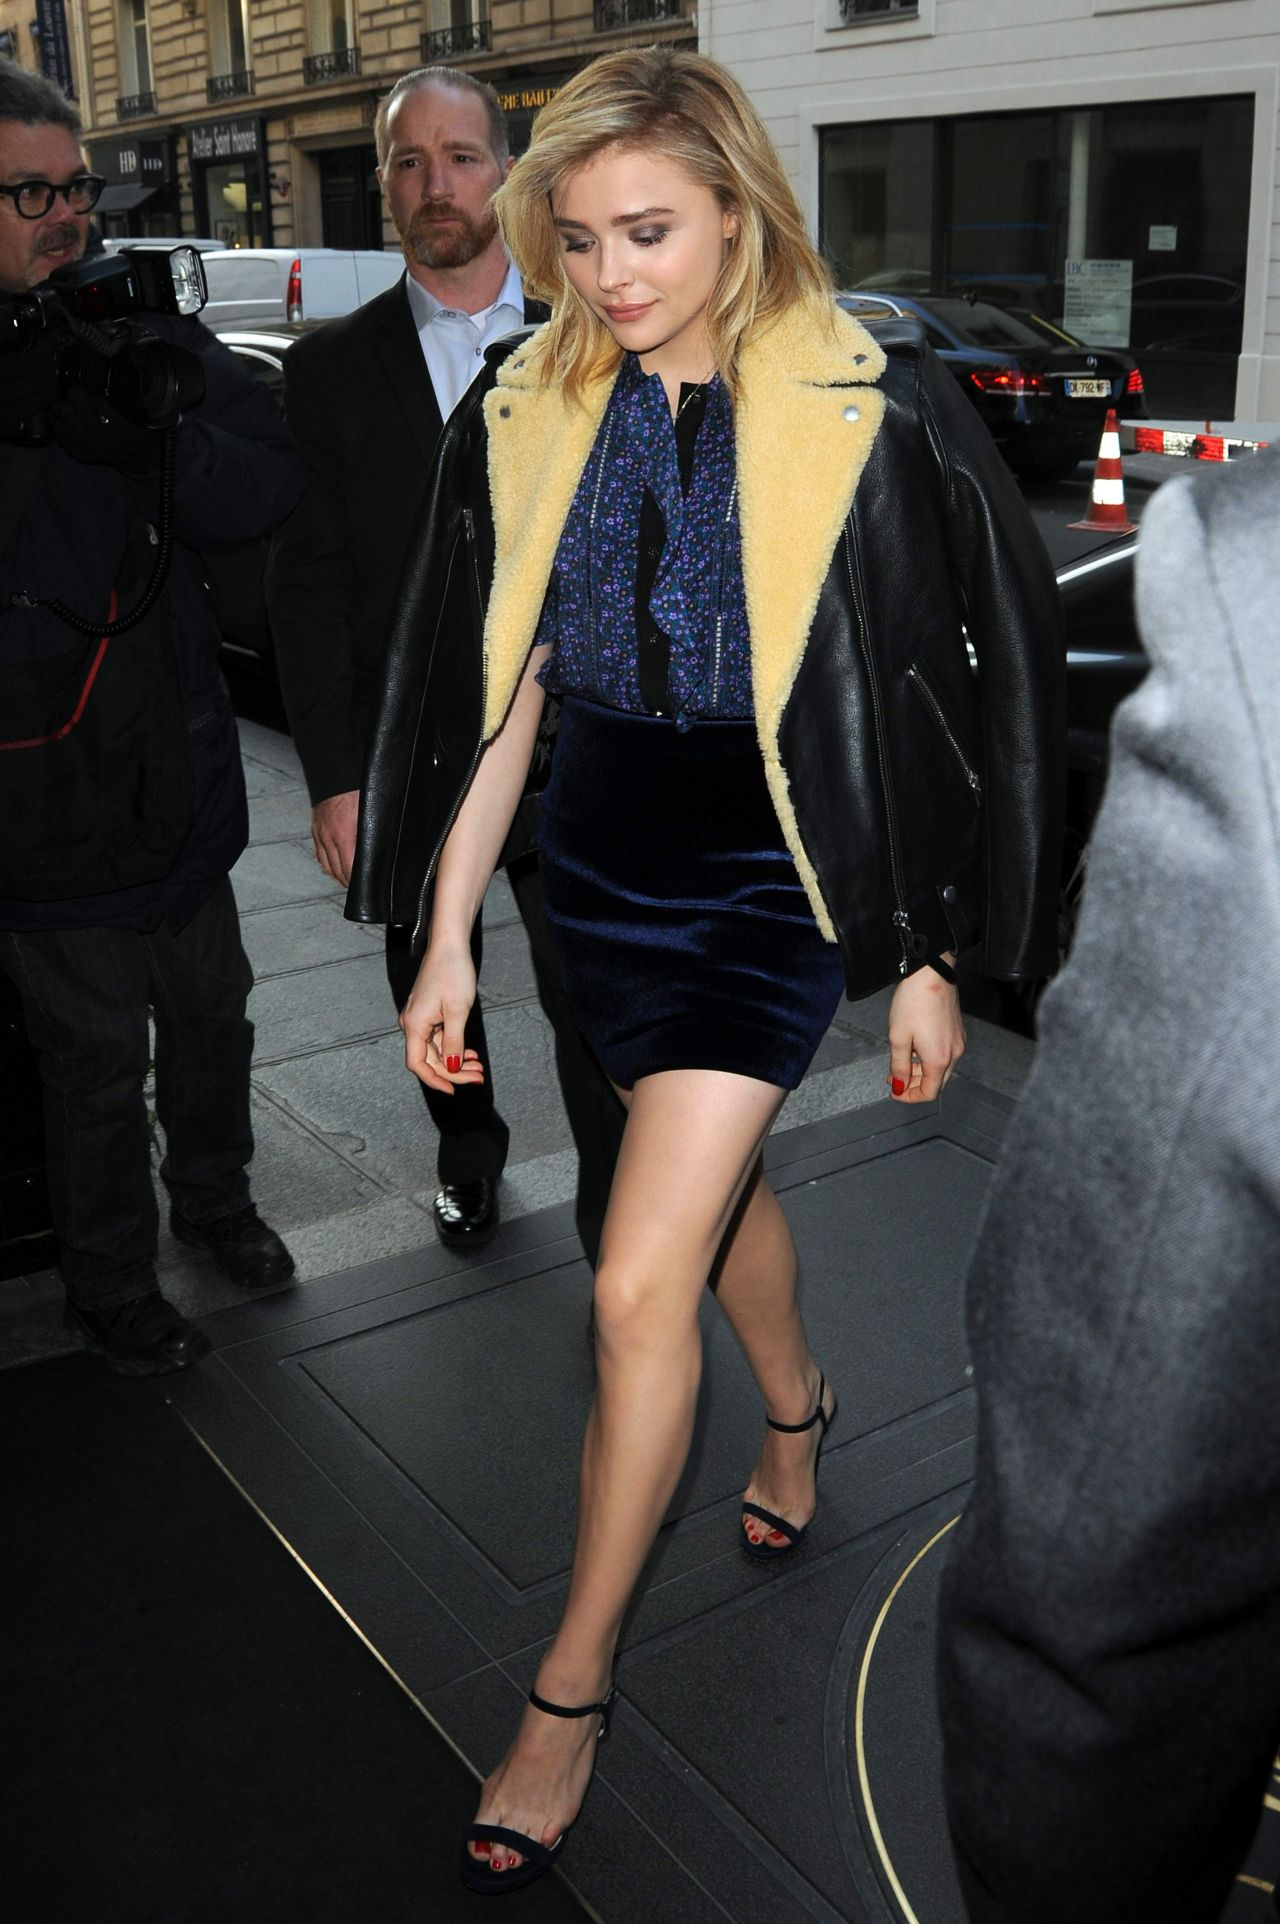 chloe-moretz-leggy-in-mini-skirt-at-hotel-le-bristol-in-paris-1-20-2016-9